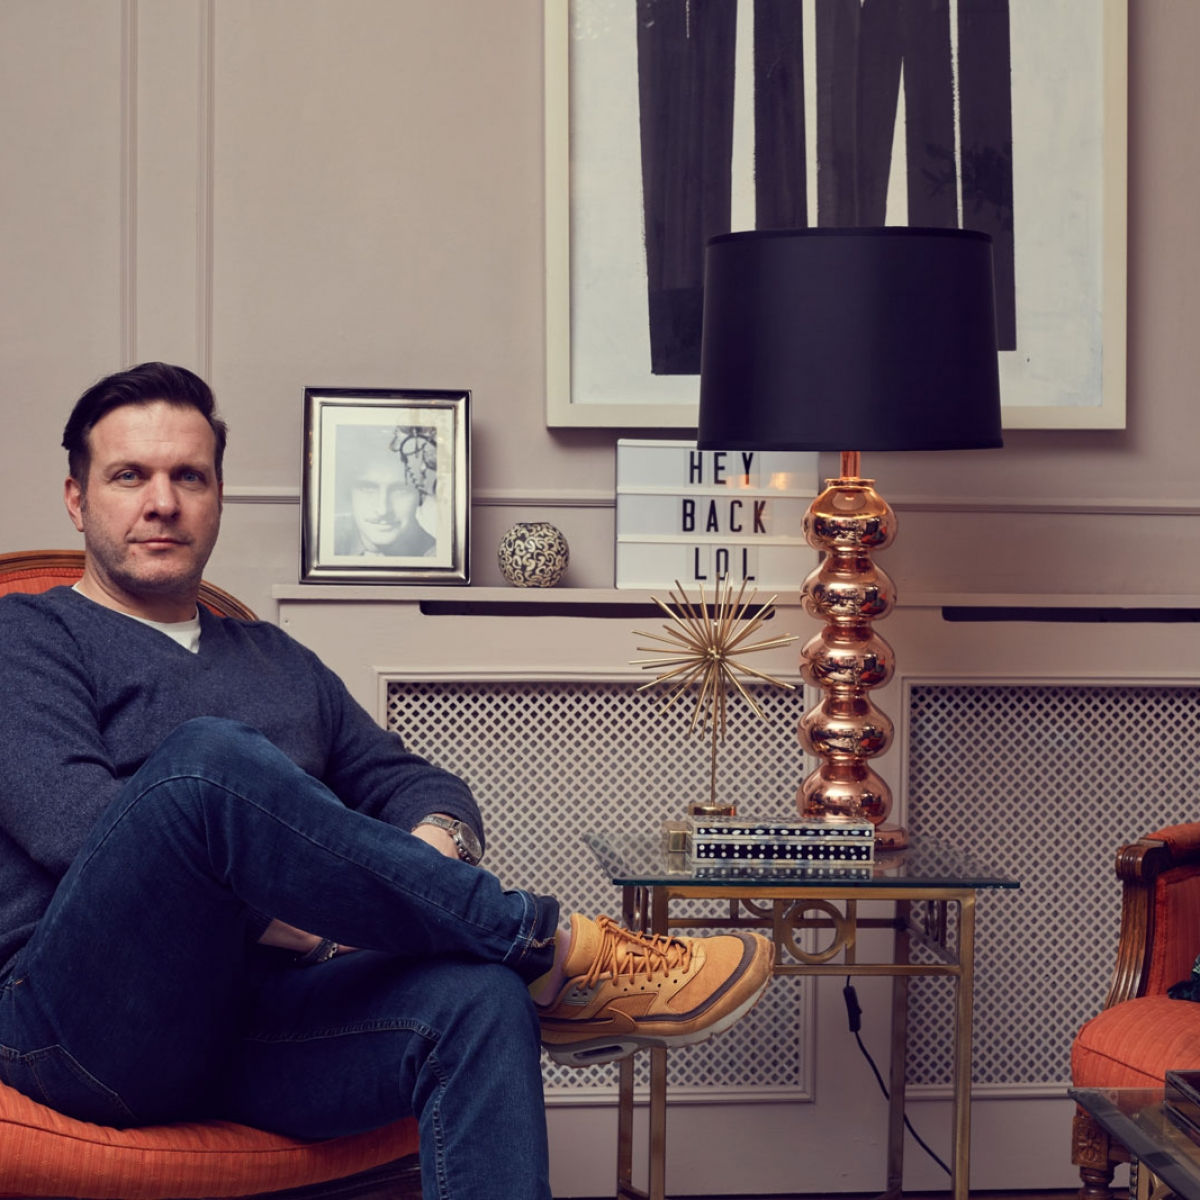 Interior designer Oliver Thomas from The Great Interior Design Challenge at home, interviewed by Sophie Robinson